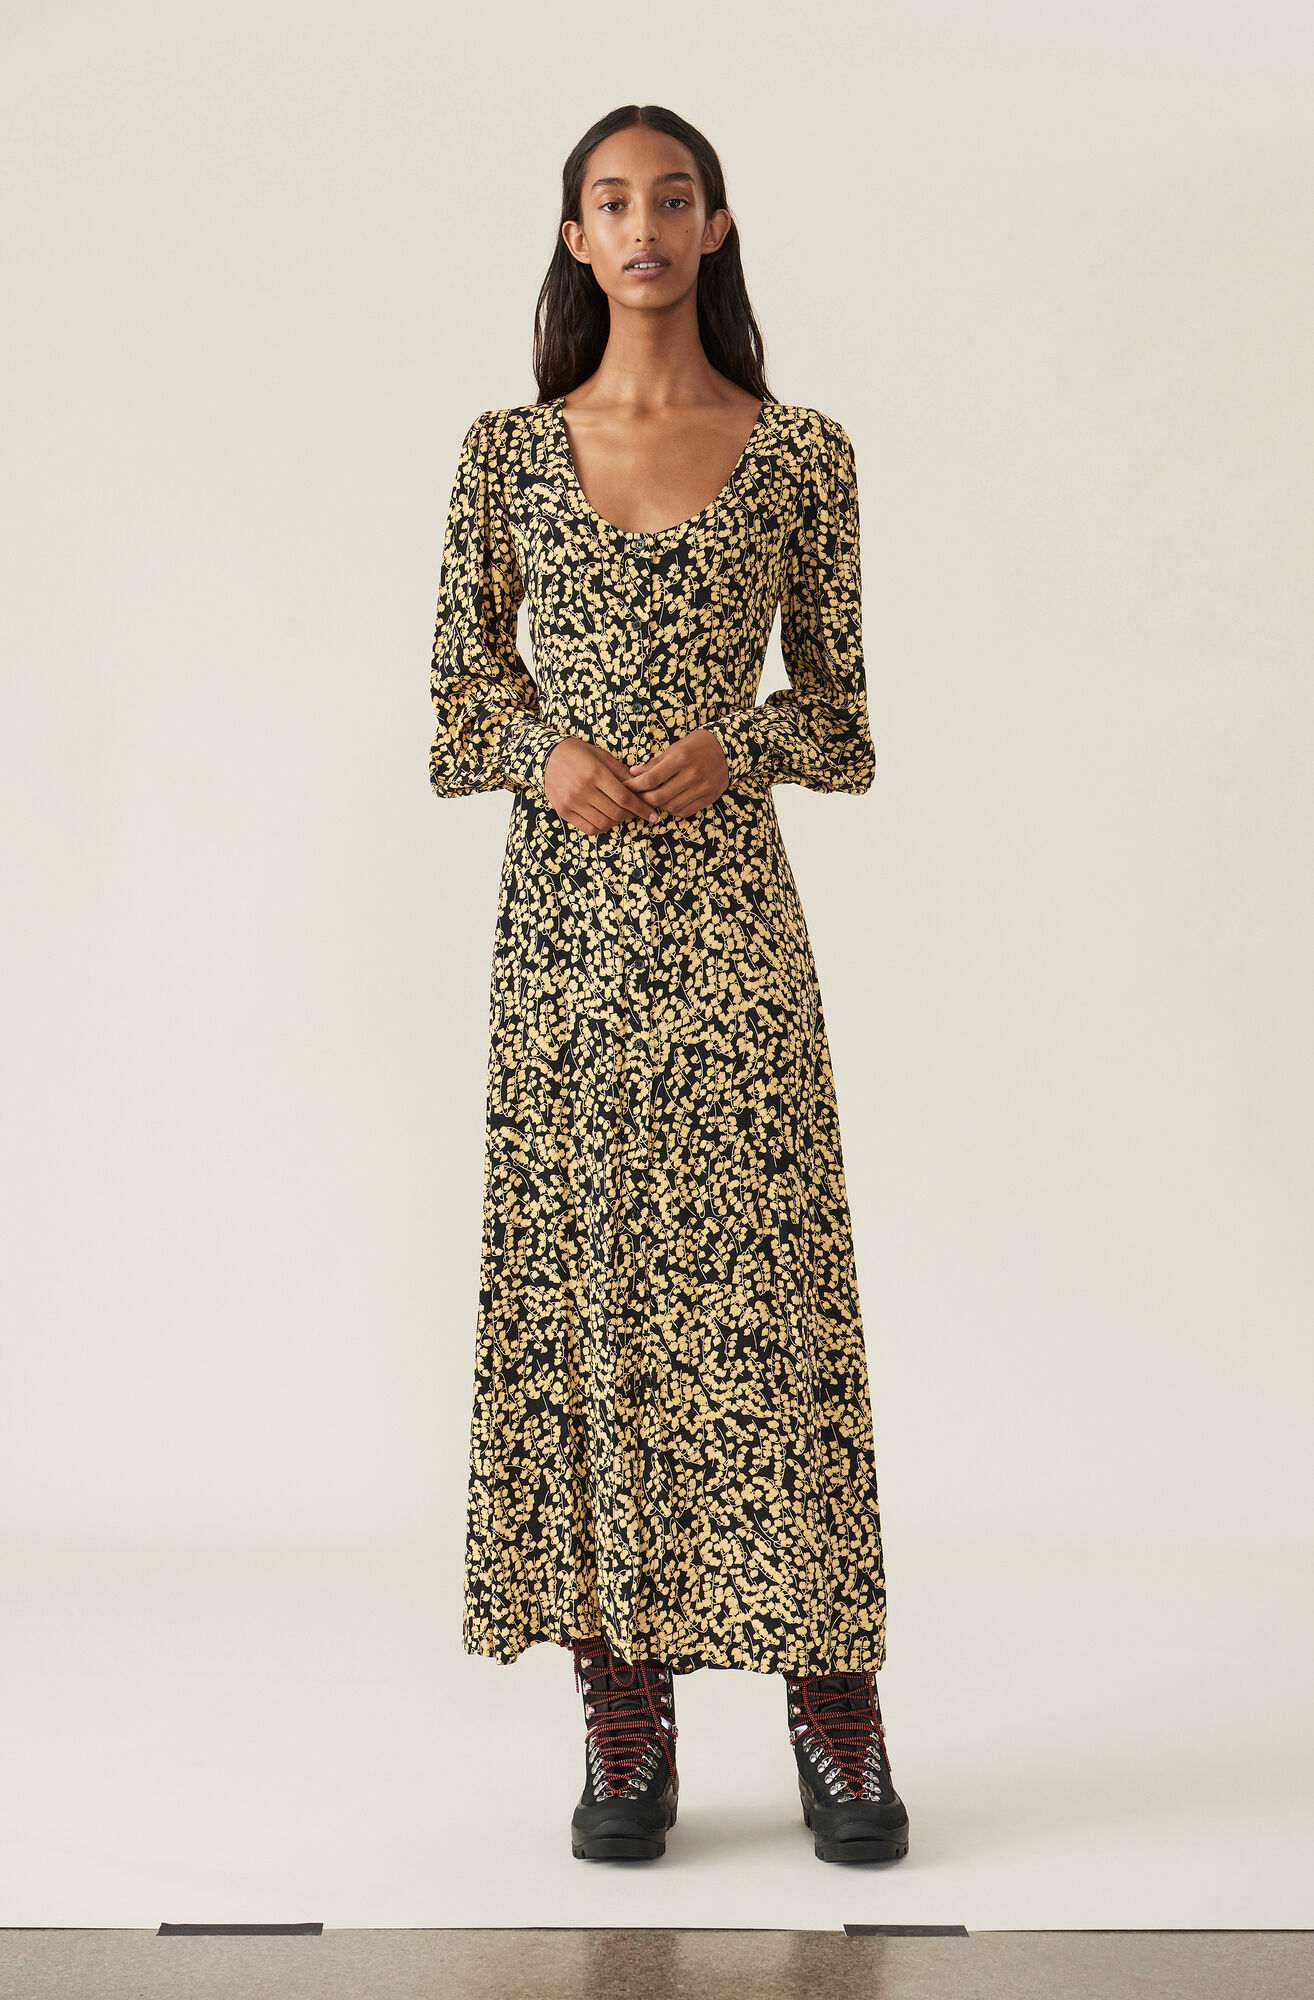 b65489bb880 GANNI Printed Crepe Maxi Dress ( 124.00 EUR ) | Shop your new ...